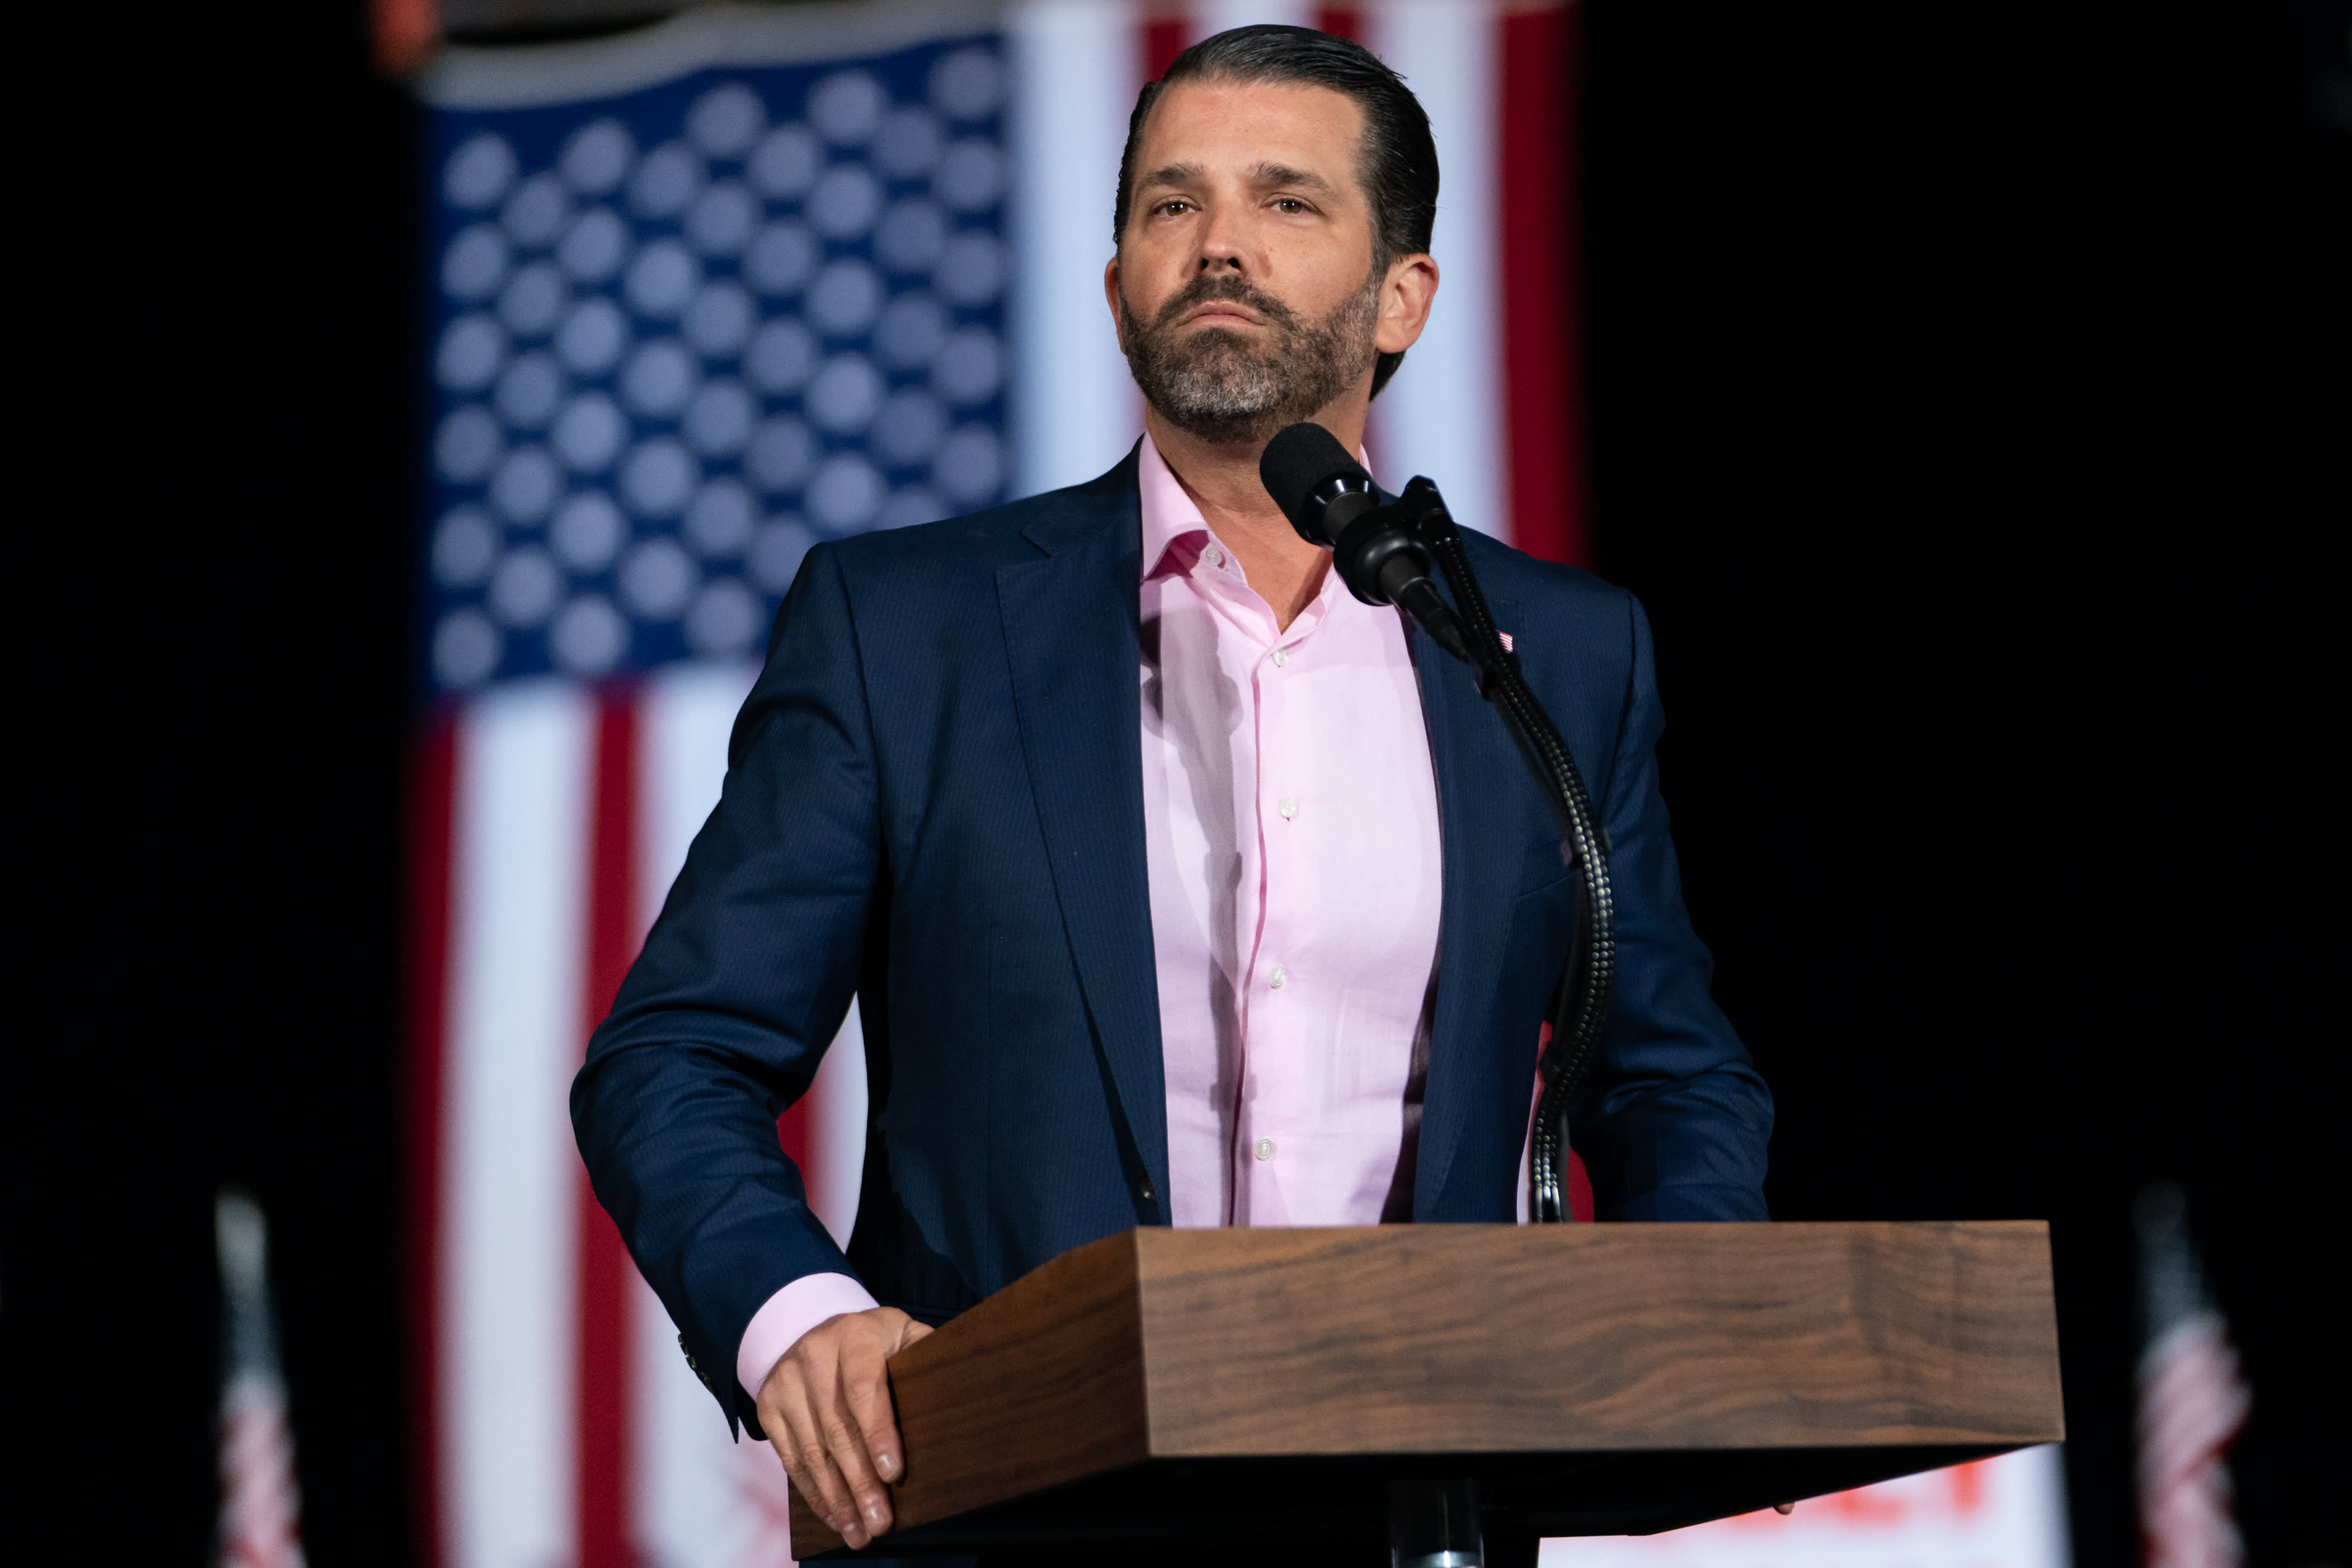 Donald Trump Jr. deposed in DC attorney general probe of 2017 inauguration funds